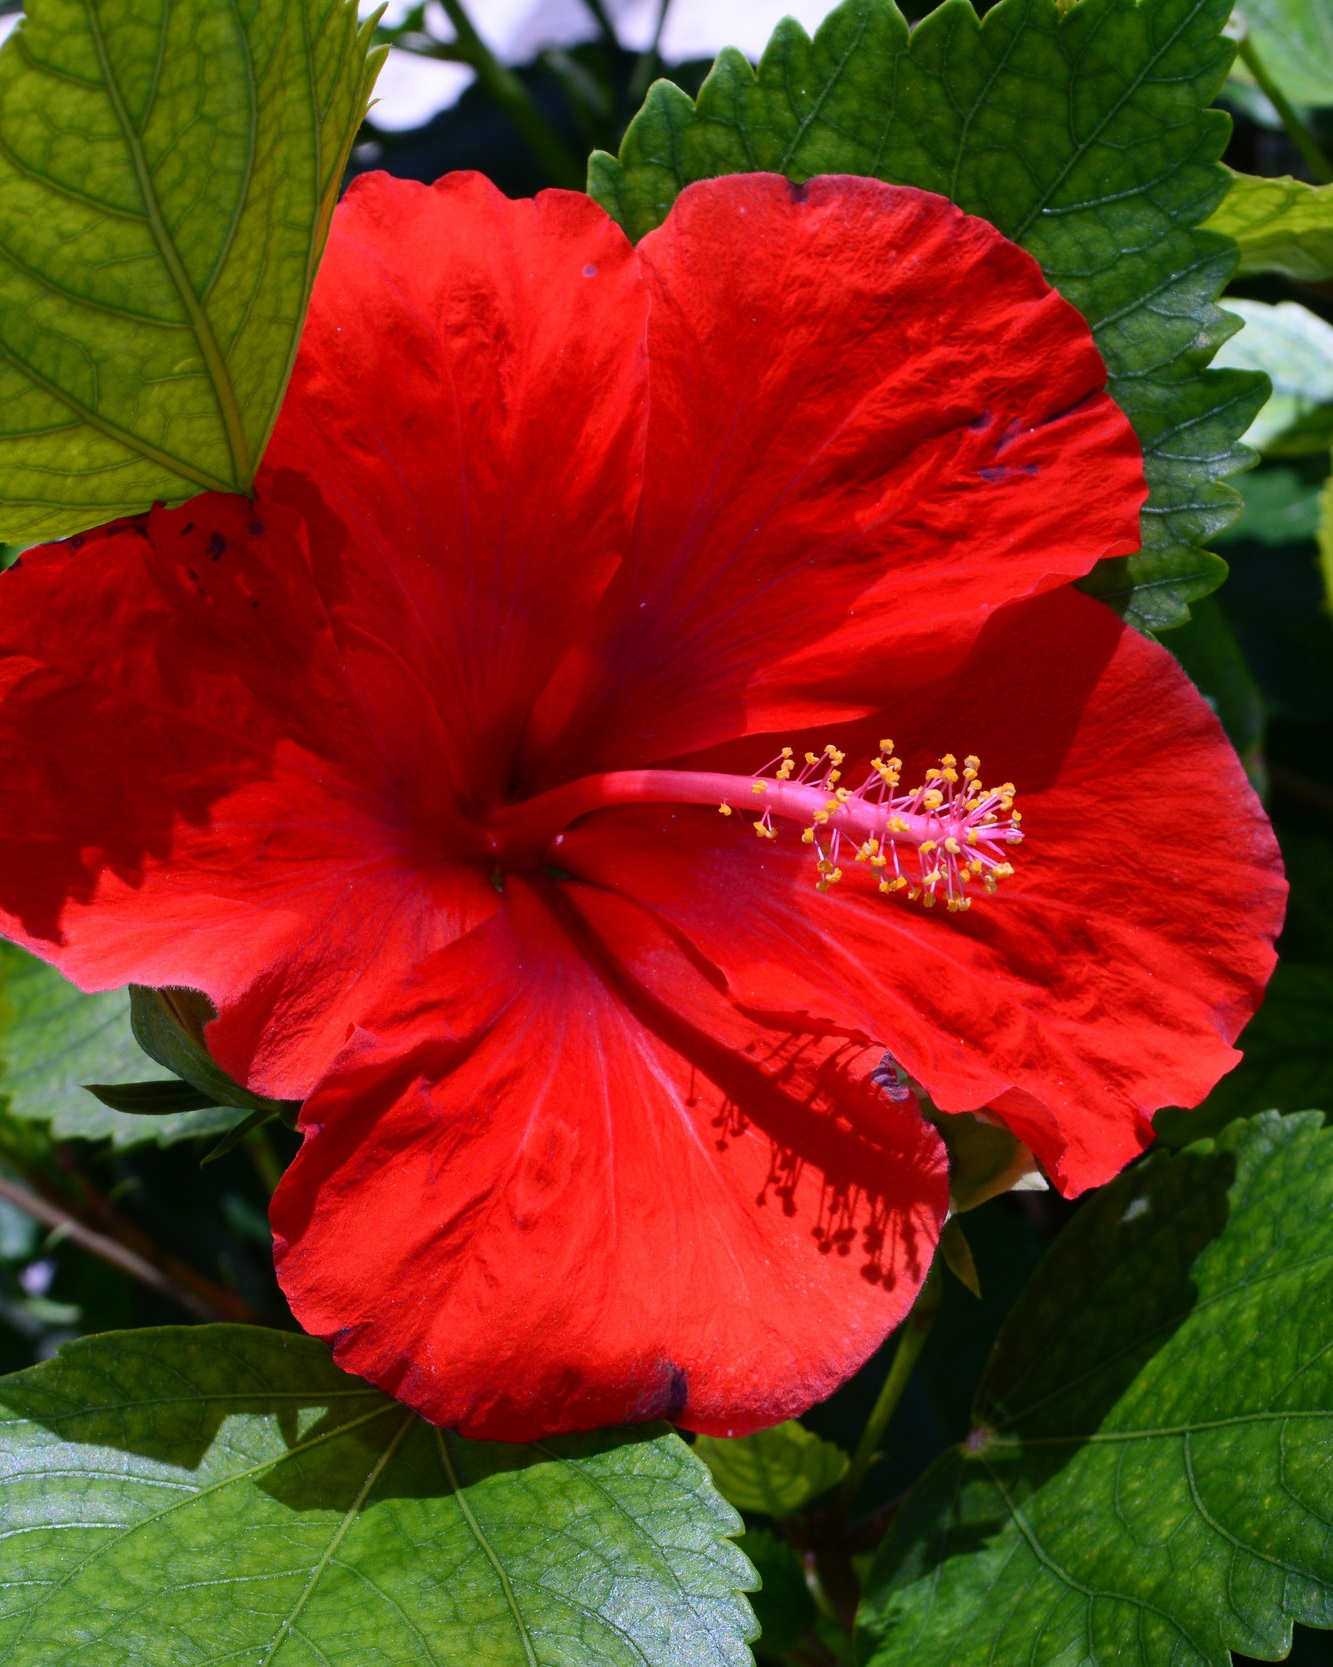 Hibiscus Flower - HIbiscus sabdariffa or Roselle is a sun-loving shrub that is grown perennially in zones 8-11. For Western North Carolina, it is an annual that is easily grown from seed or transplant. Part of the mallow family, it's growth habit resembles okra. Due to an influx of hybrid hibiscus, stick with Roselle when growing hibiscus as an edible flower. It is the most common edible one, using the calyxes, leaves and flowers in recipes from teas to jams.This shrub loves sunlight, and consistent water. It can reach 6'-8' tall so give it lots of room. Place in an area that doesn't get a lot of wind as its branches snap easily.It flowers beginning in July and will continue through early fall.It's most popular use is for hisbiscus tea which is rich in vitamin C.